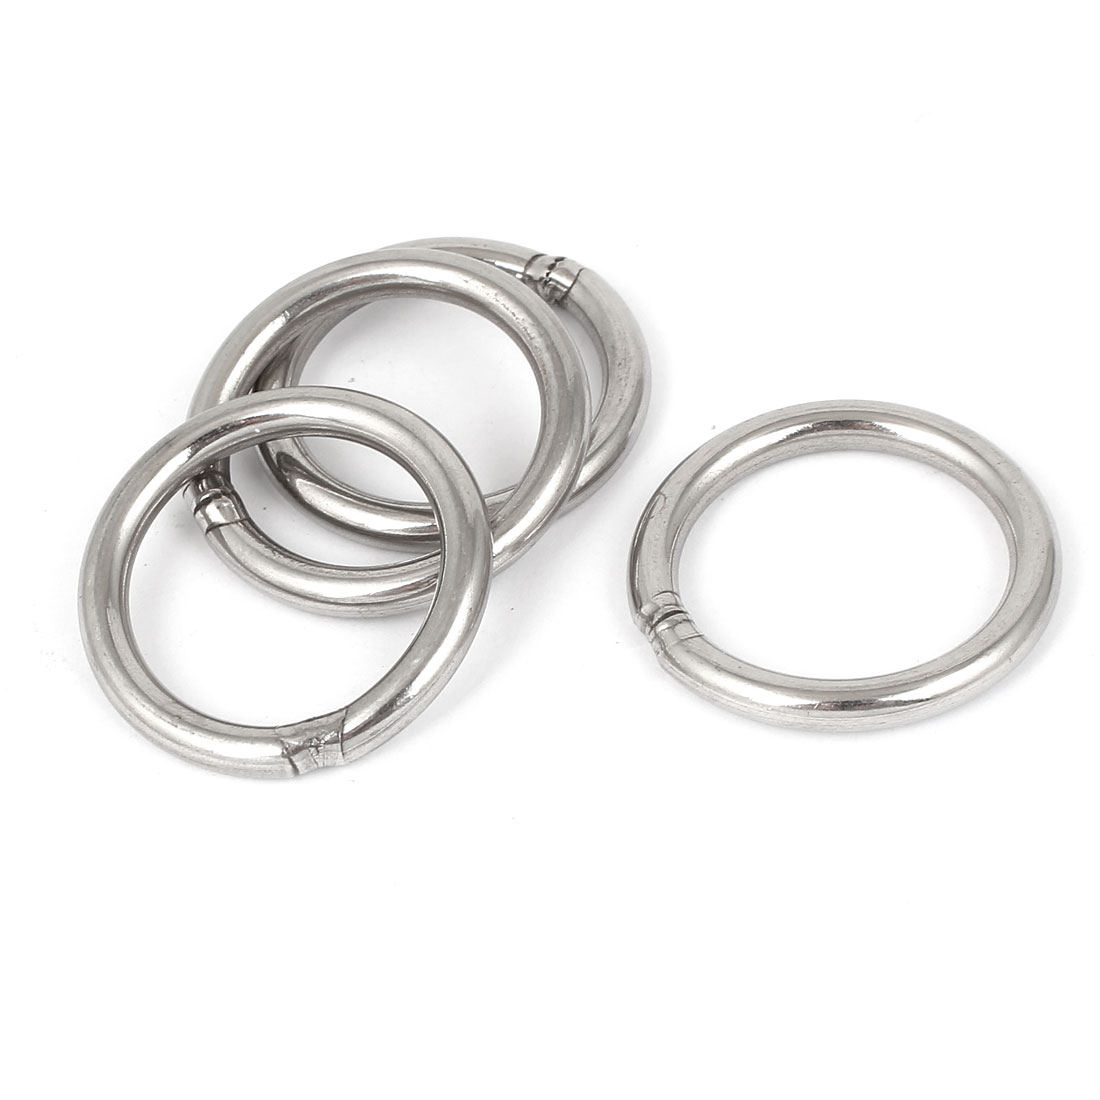 M5 x 40mm 201 Stainless Steel Webbing Strapping Welded O Rings 4 Pcs